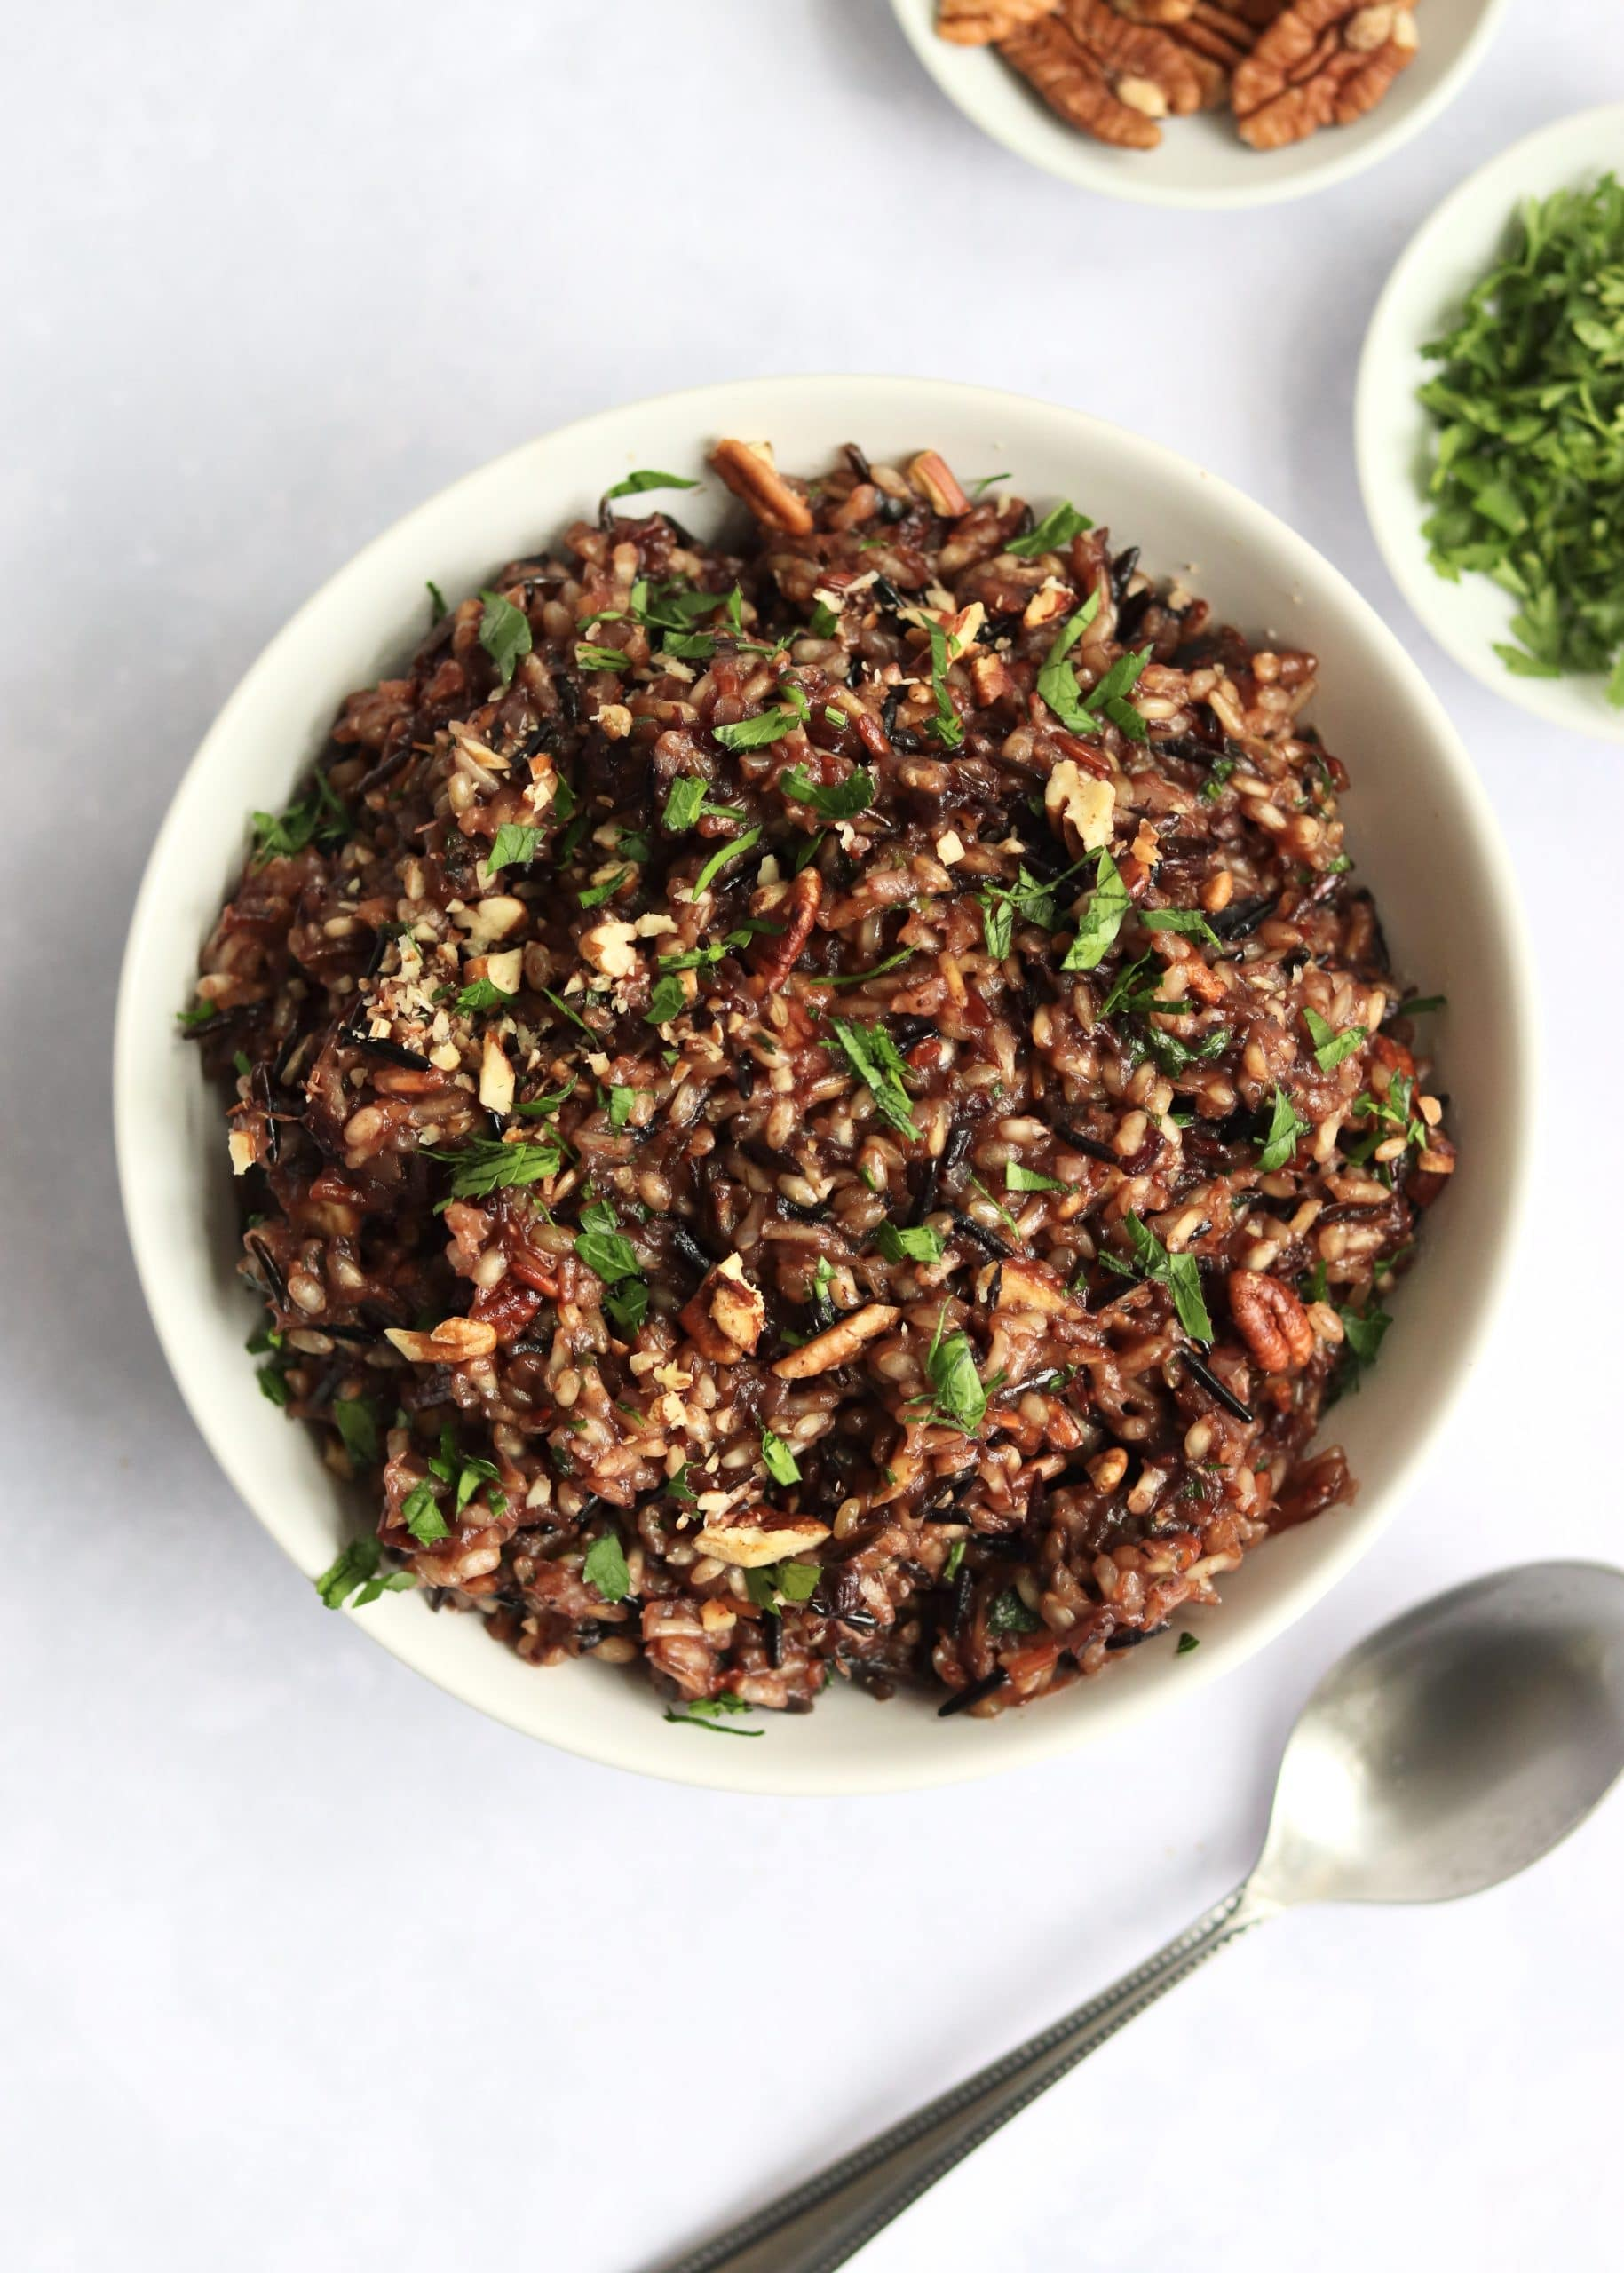 Cranberry wild rice pilaf in serving bowl